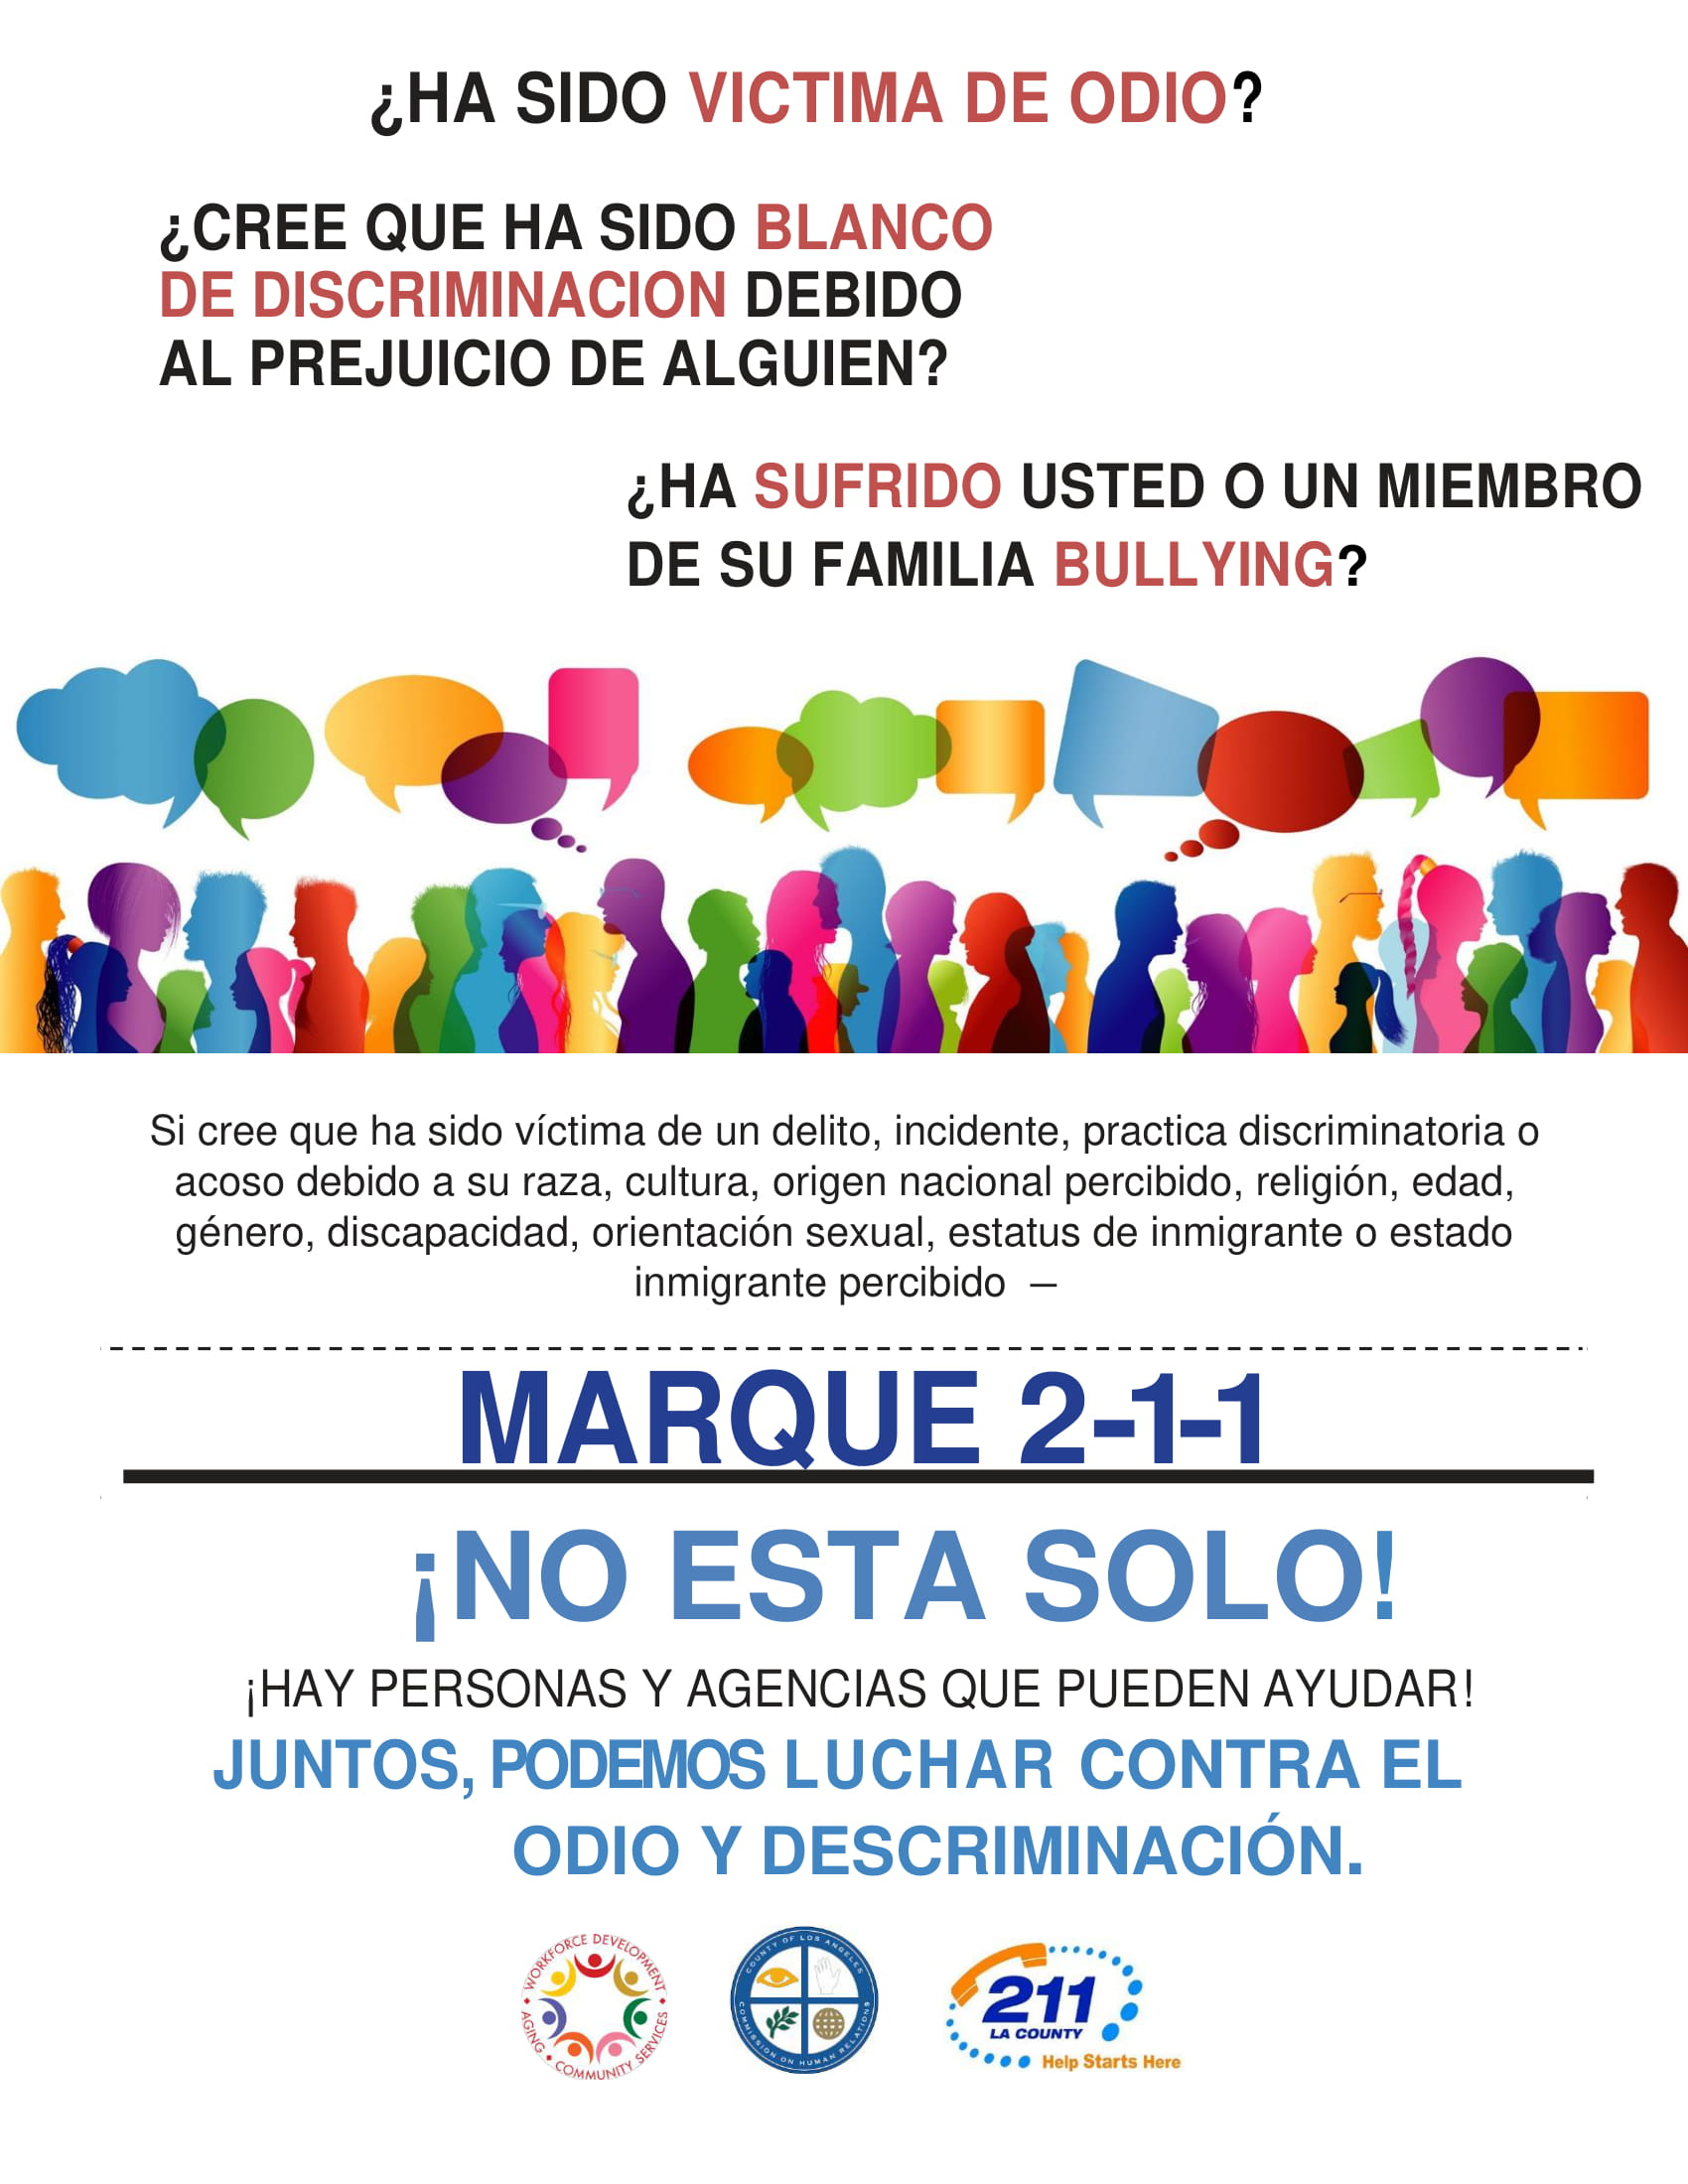 report hate flyer image in spanish